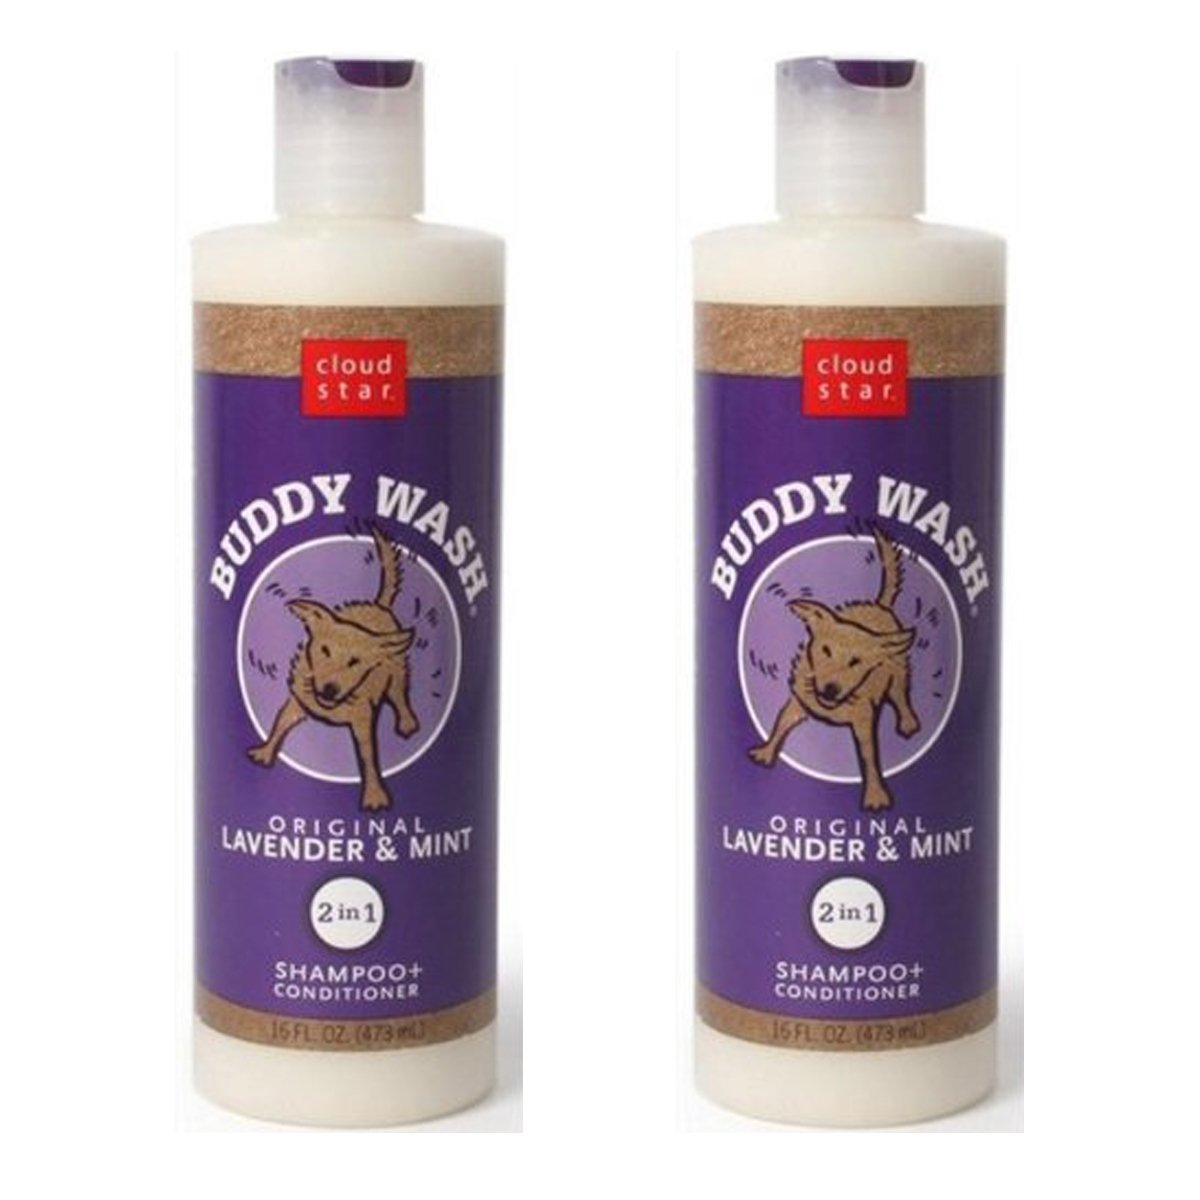 Cloud Star Buddy Wash Lavender & Mint 2-in-1 Dog Shampoo + Conditioner 32 Oz by Buddy Biscuits